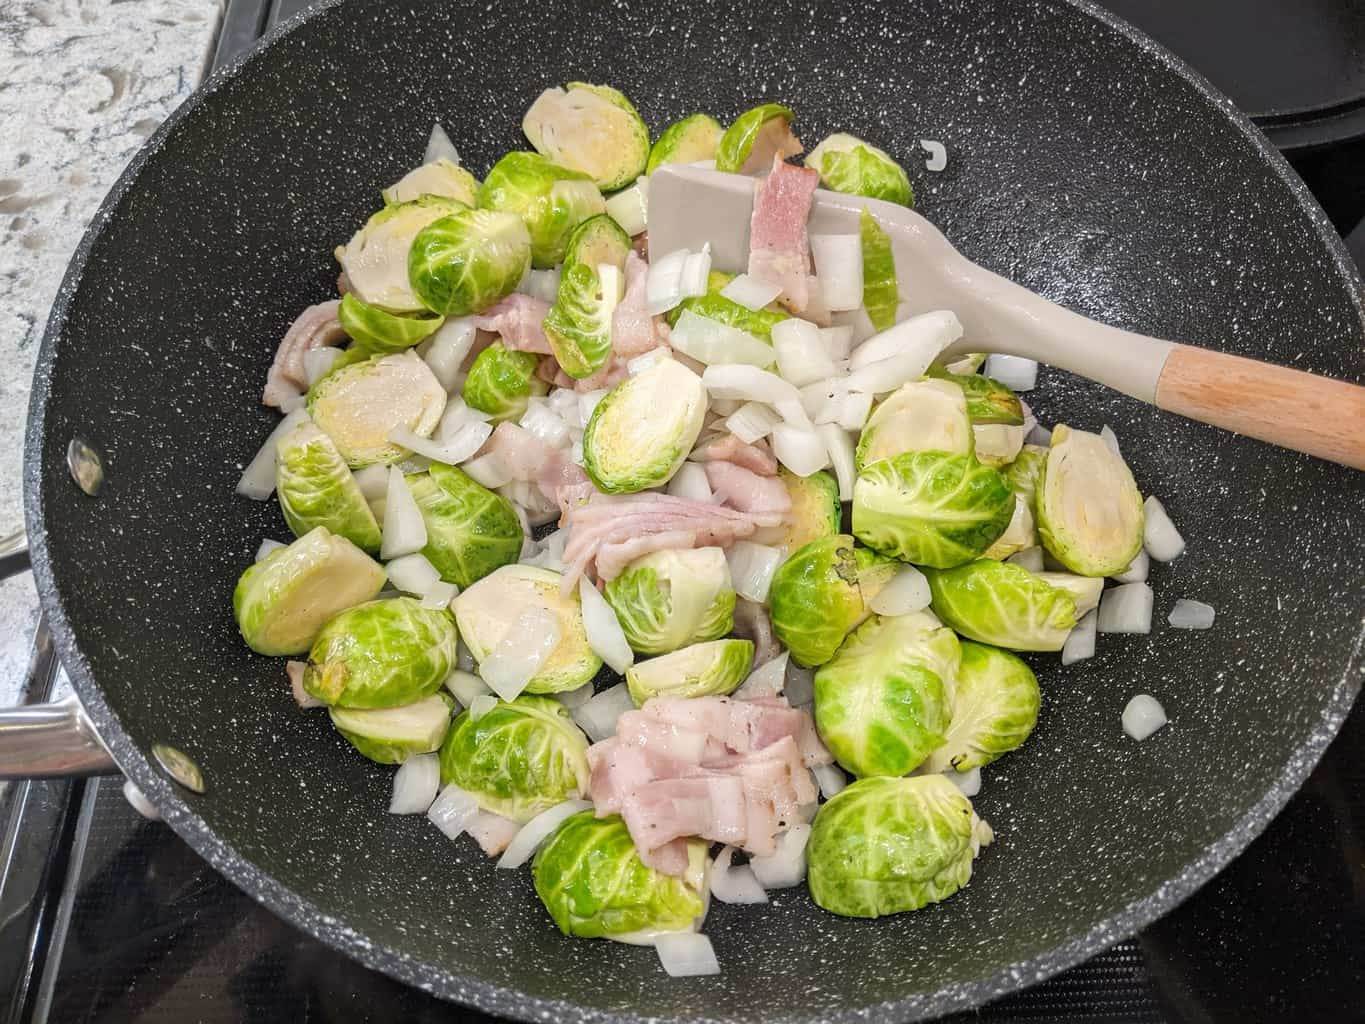 cooking brussel sprouts in a wok with onions and bacon